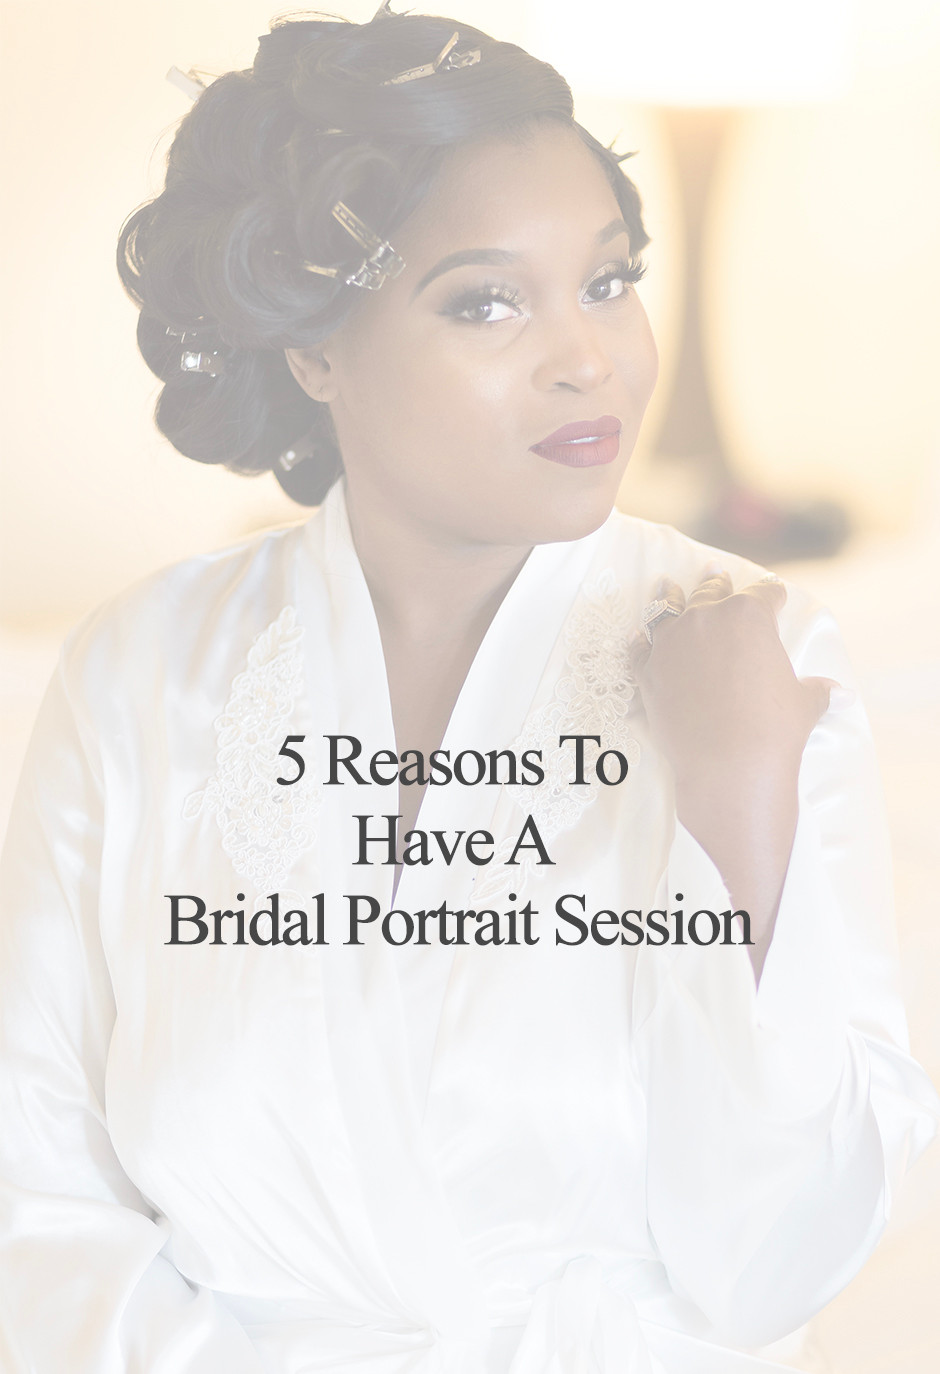 5 Reasons To Have A Bridal Portrait Session